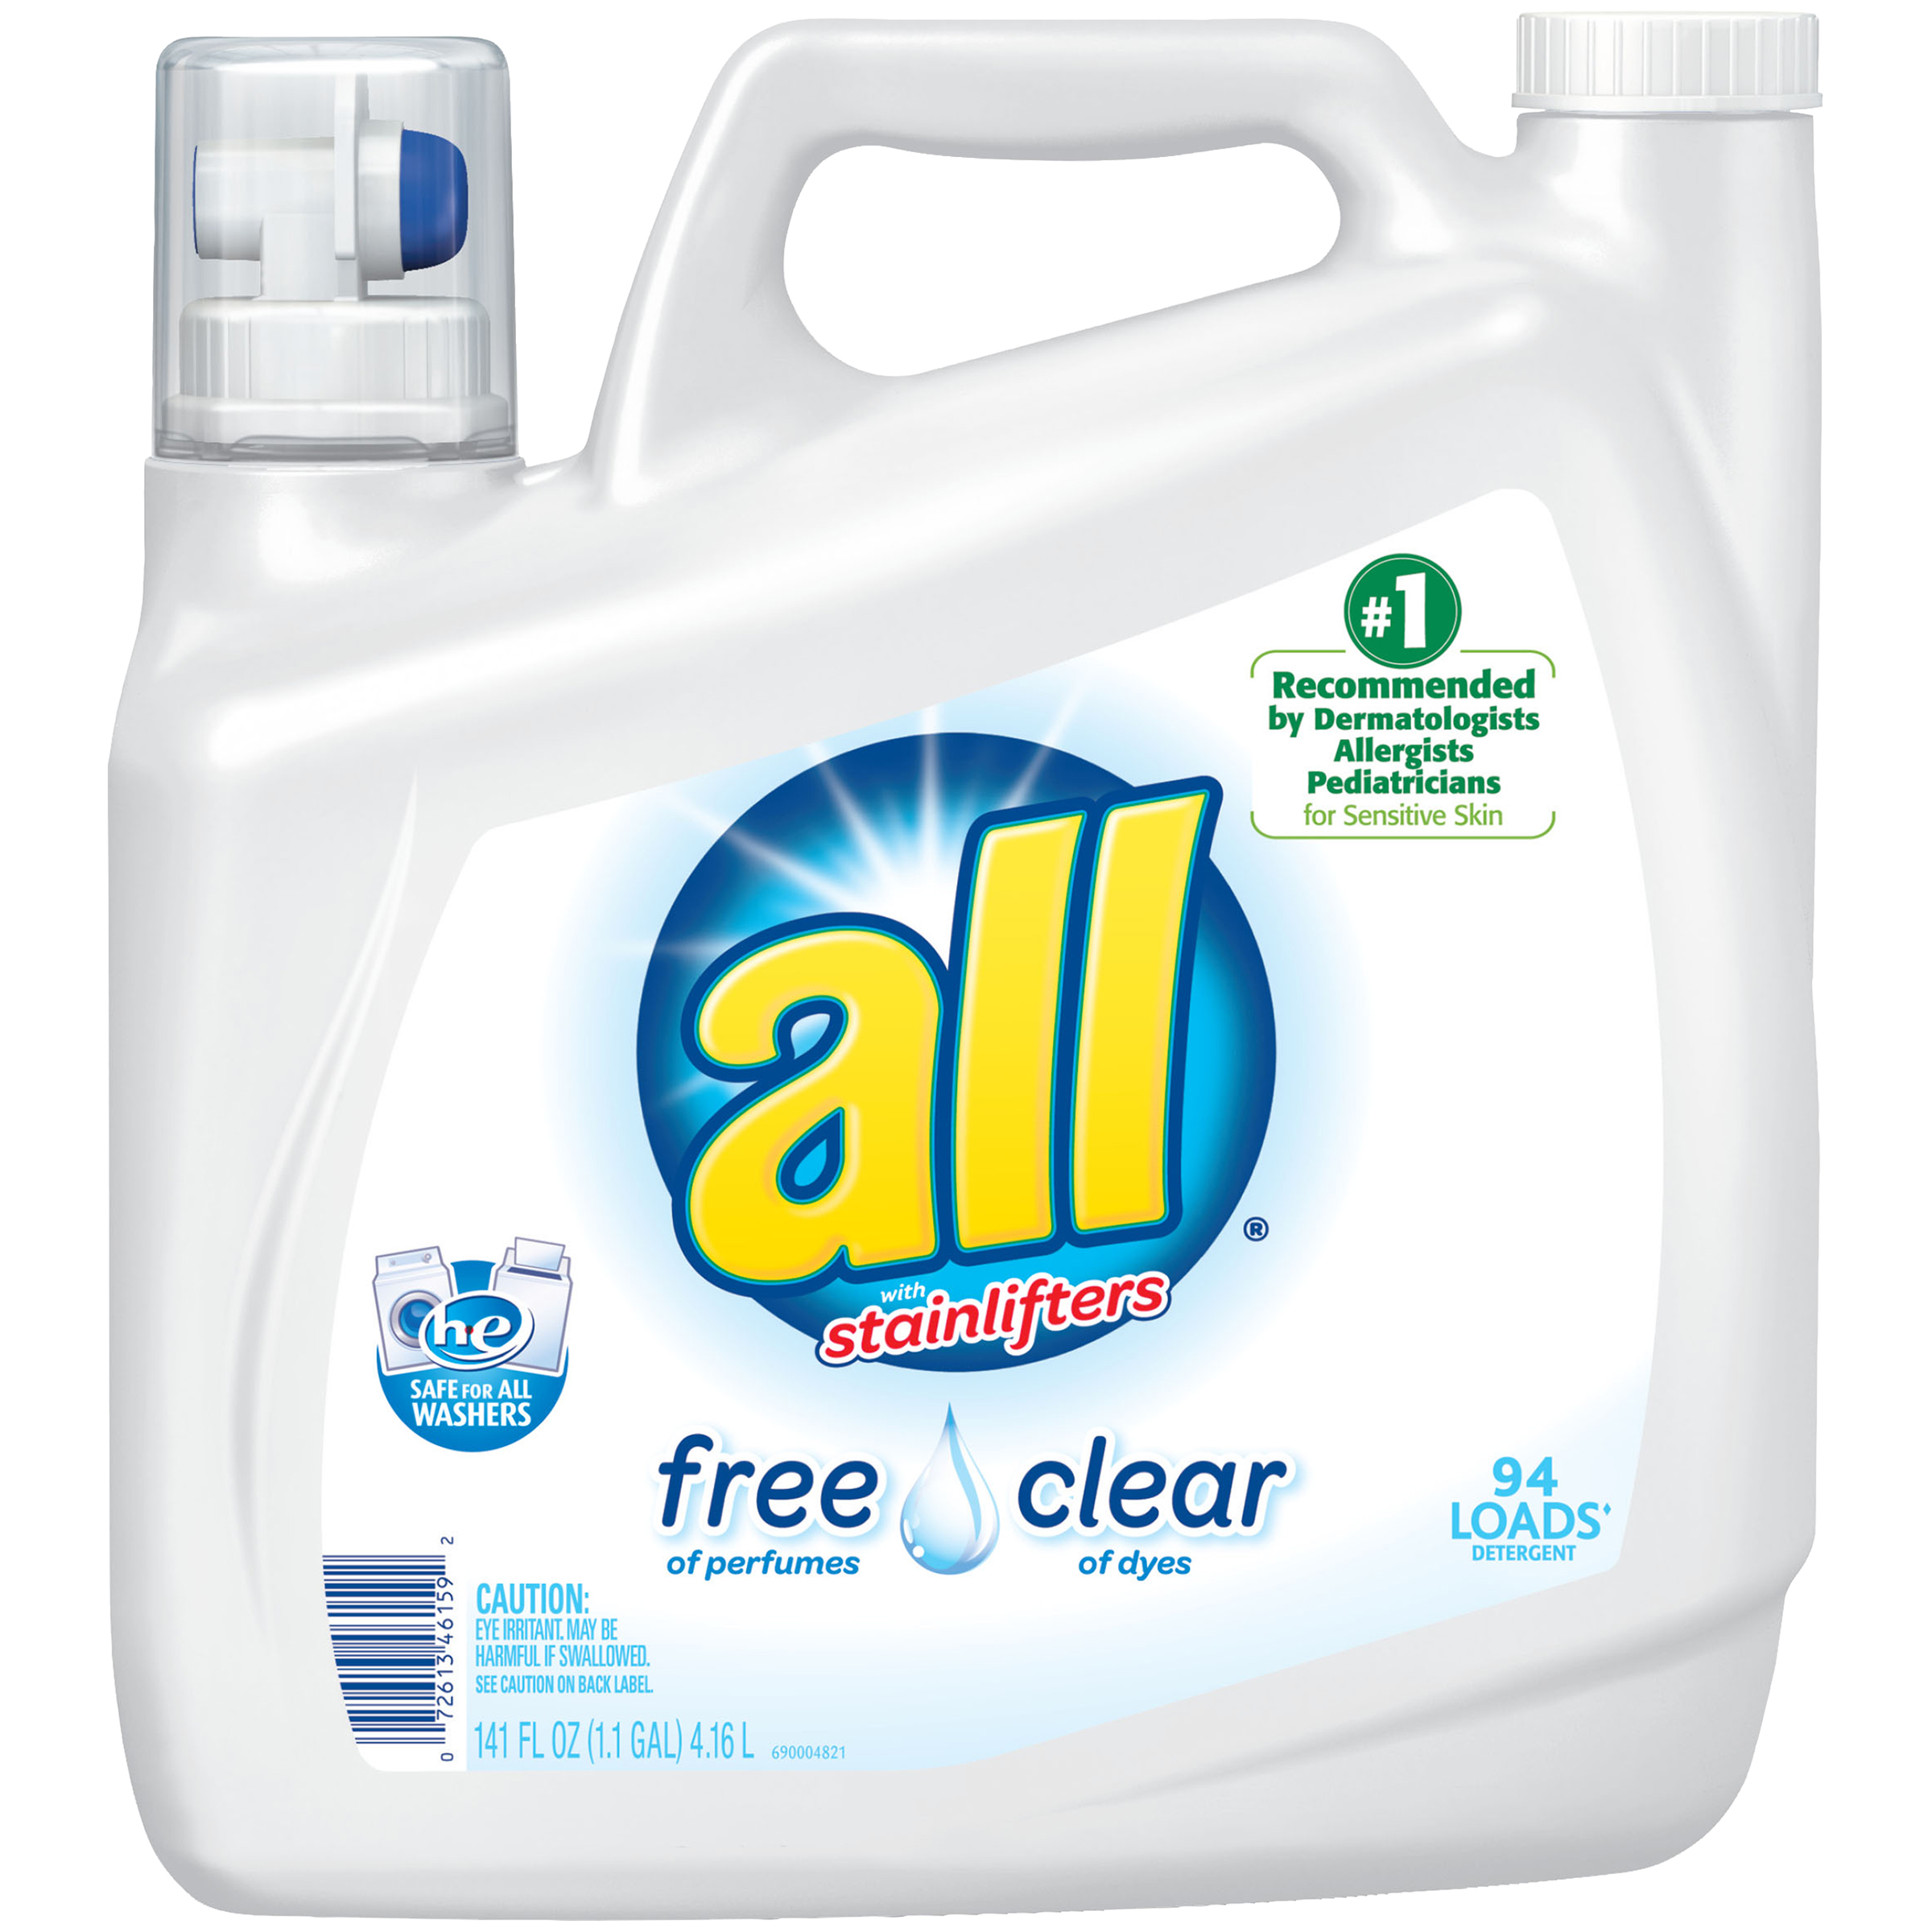 all Liquid Laundry Detergent Free Clear for Sensitive Skin, 141 Oz, 94 Loads